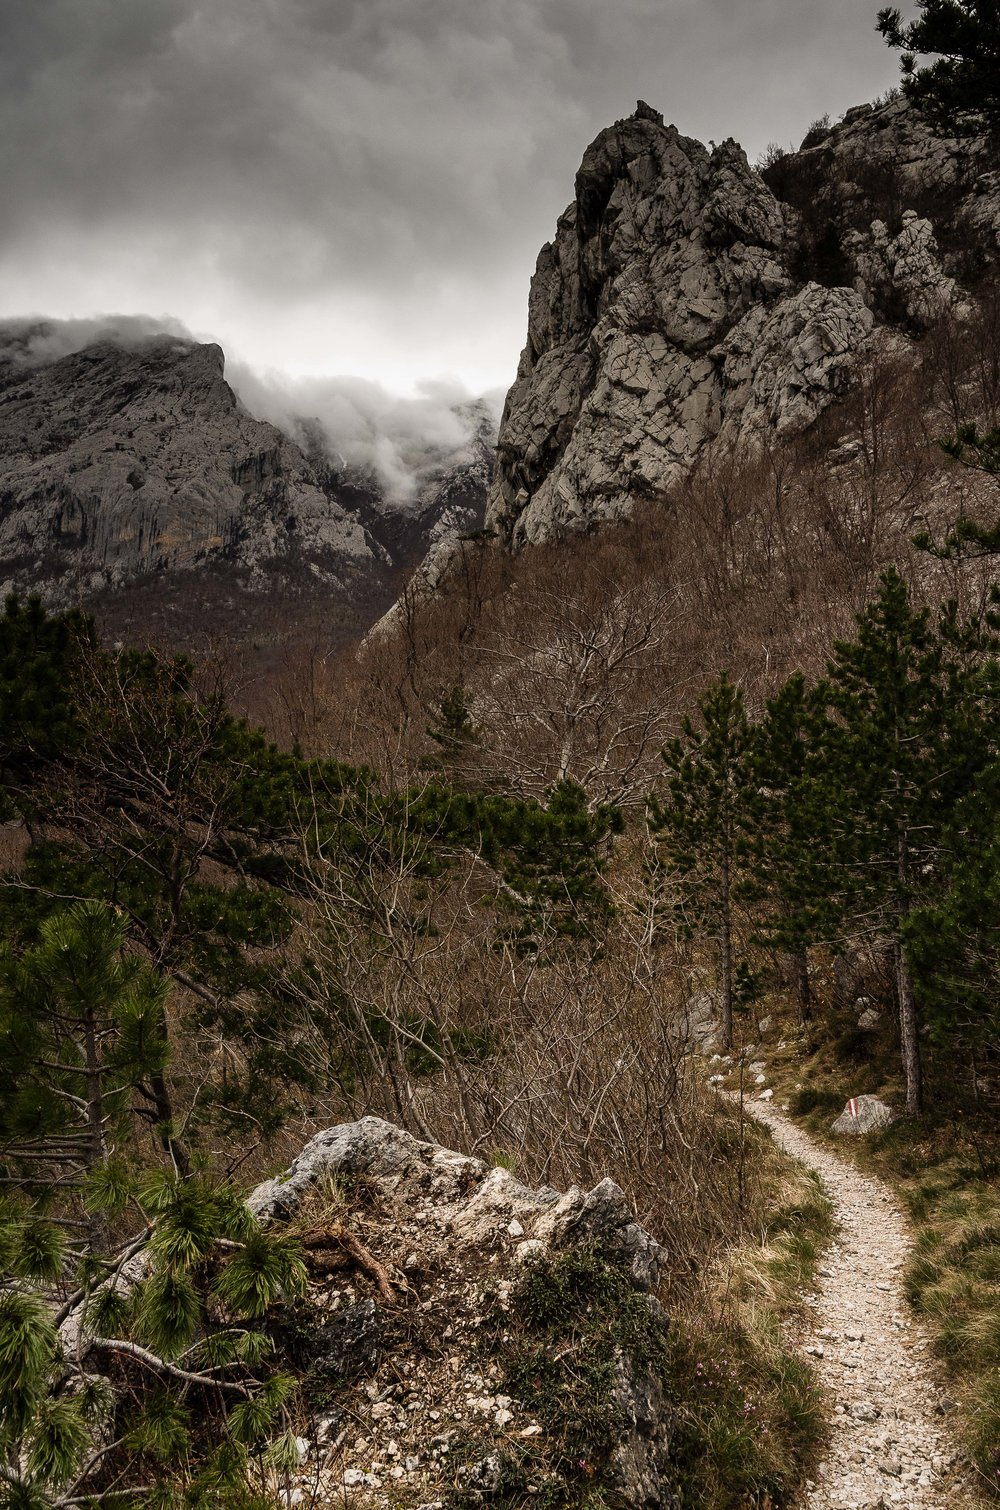 Storm clouds falling over the Velebit mountains.